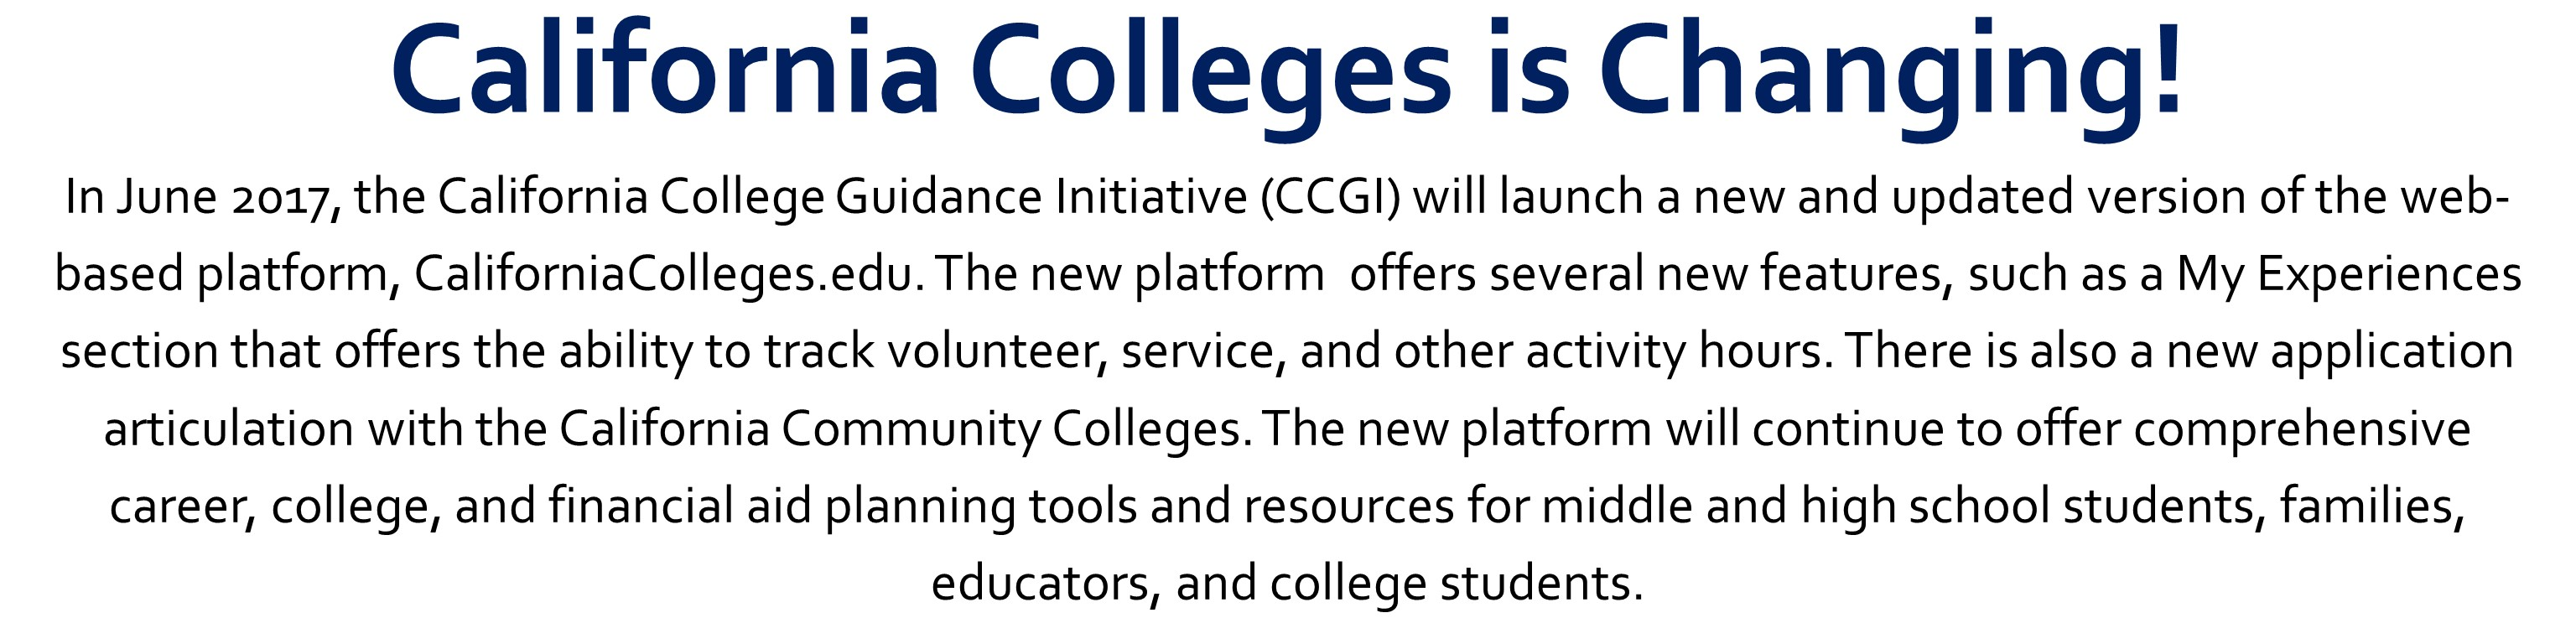 California Colleges is Changing!